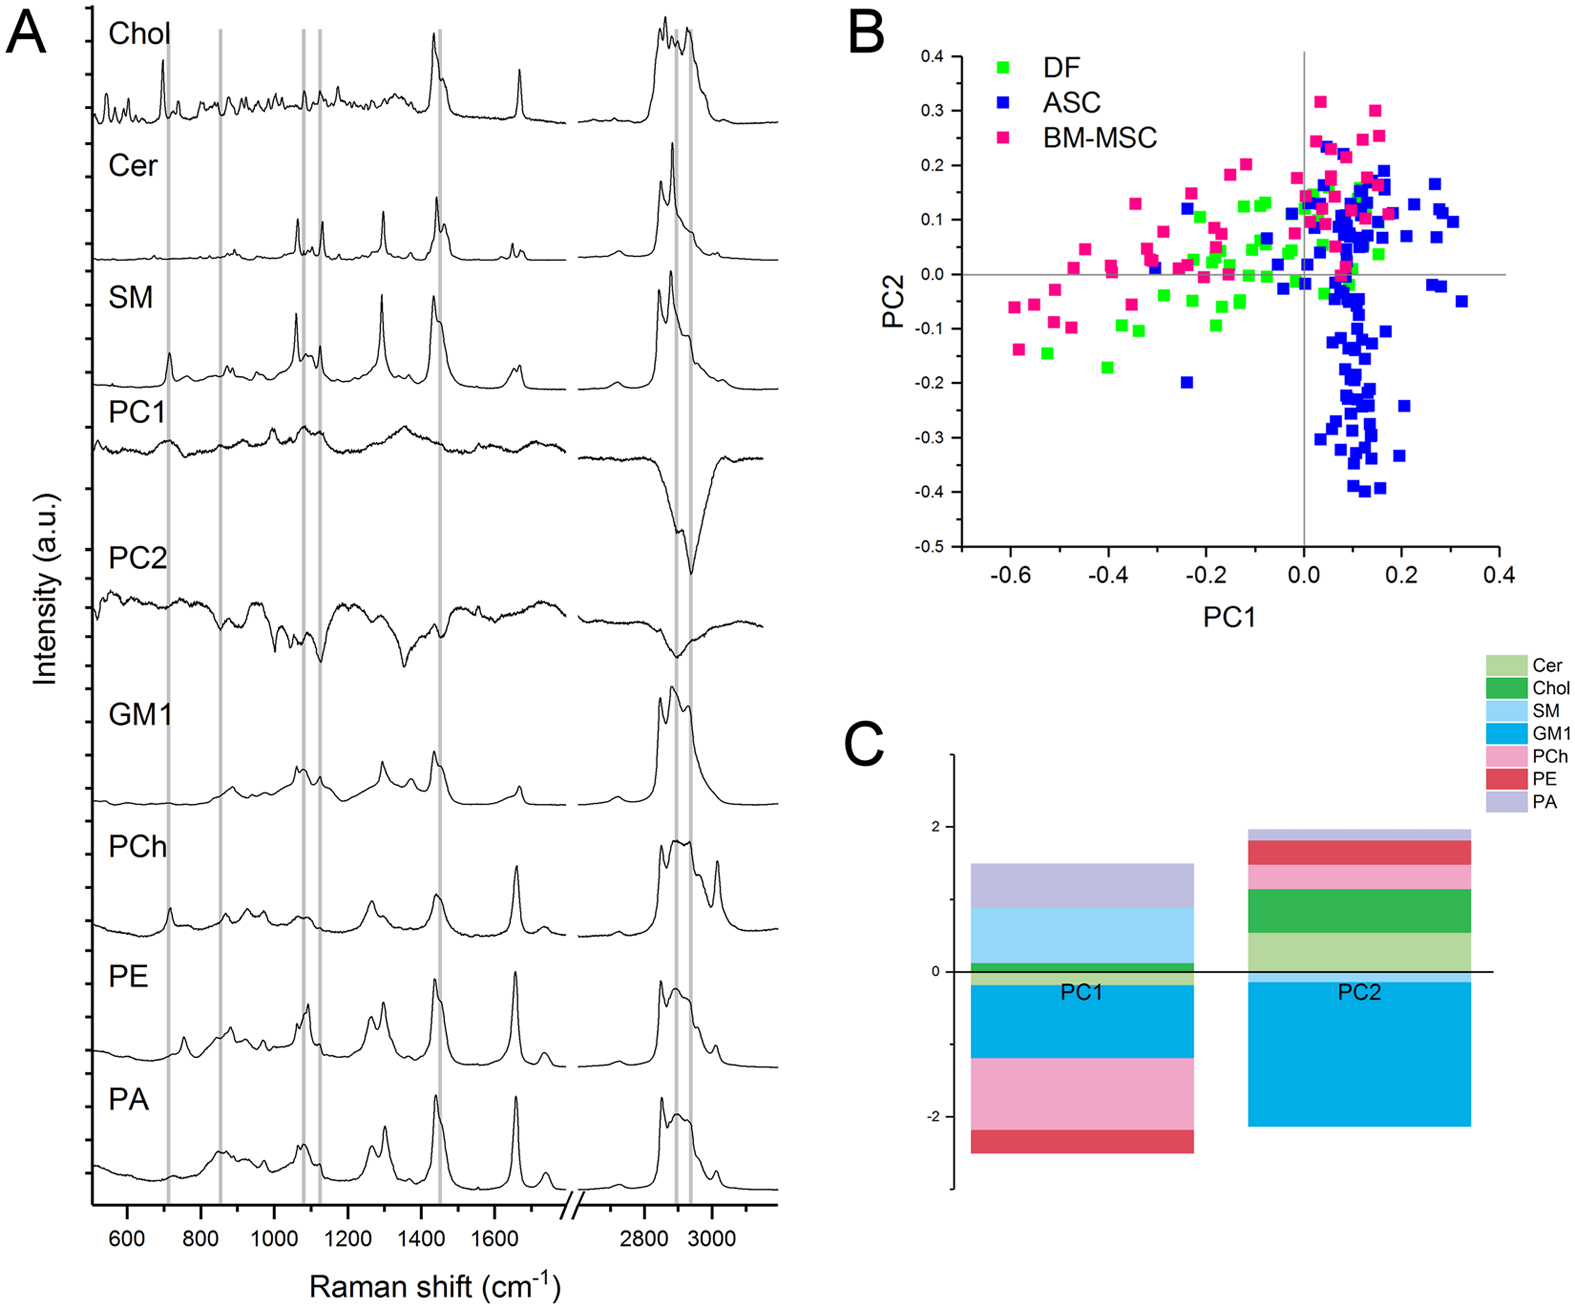 Raman Spectroscopy Uncovers Biochemical Tissue Related Features Of Electrical Panel Box Diagram For W219 A Spectra Reference Lipid Molecules Pc1 And Pc2 That Were Considered Cls Fitting The Grey Lines Highlight Correspondences Between